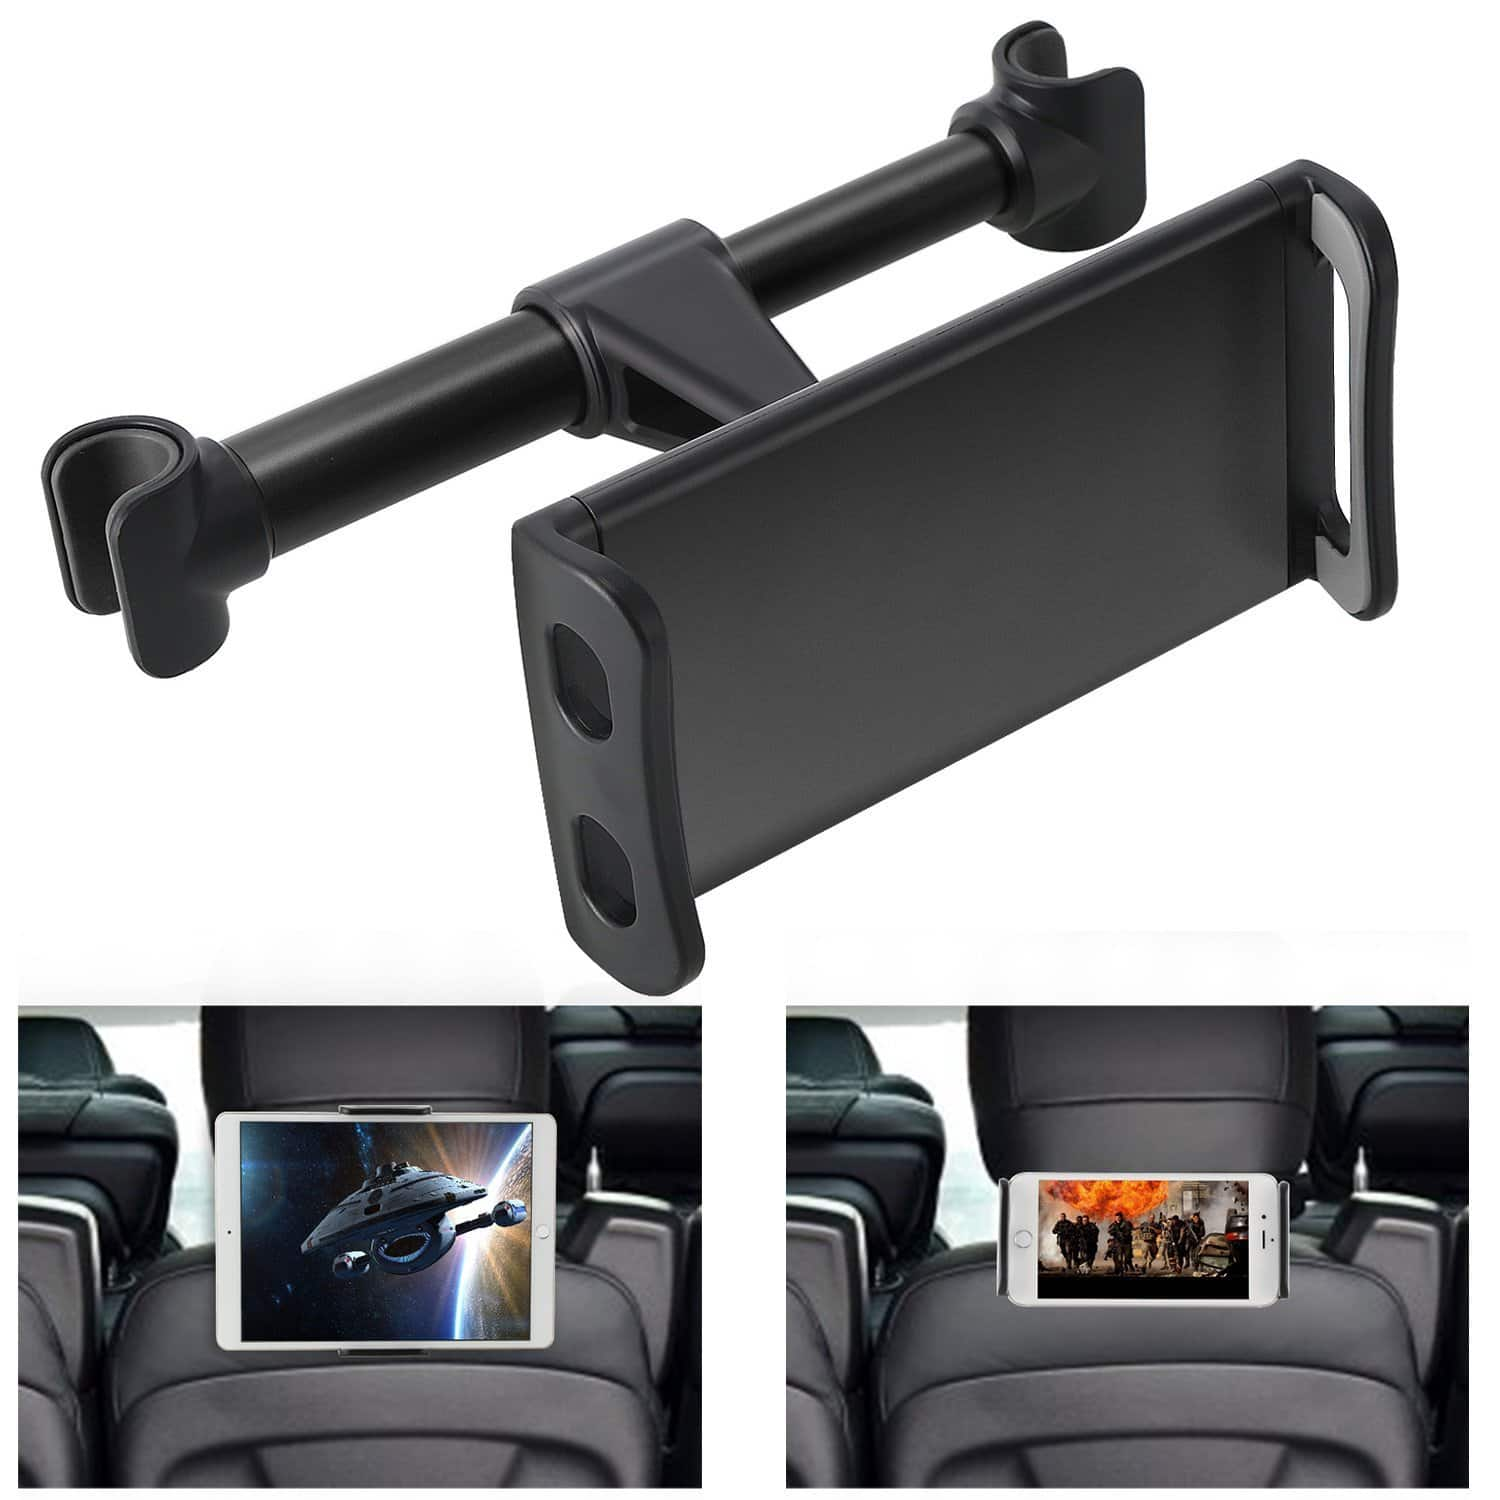 Amazon has 360° Rotation Car Headrest Mount for $5.49 with FS for Prime members (FBA)